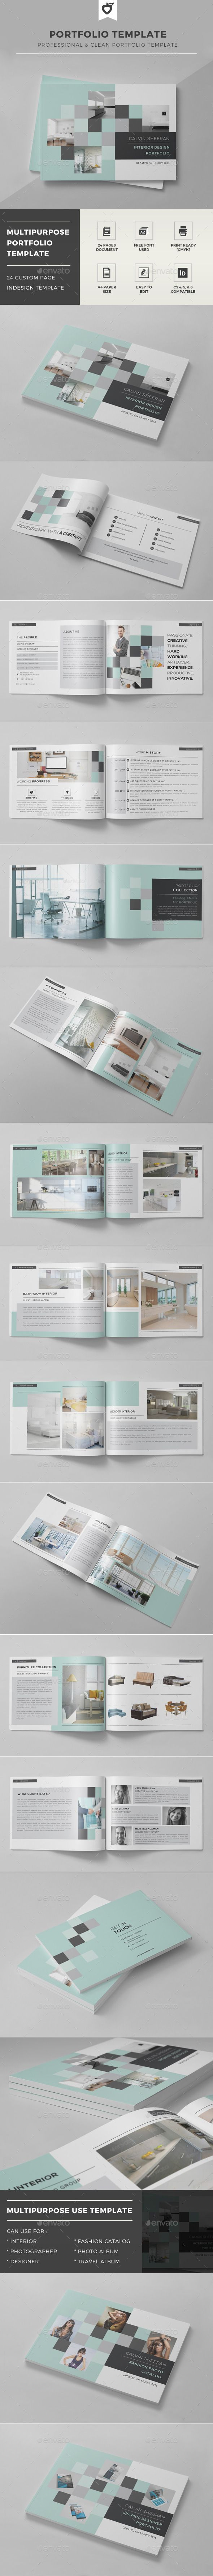 Portfolio Brochure Template #design #print Download: http://graphicriver.net/item/portfolio-template/11969753?ref=ksioks